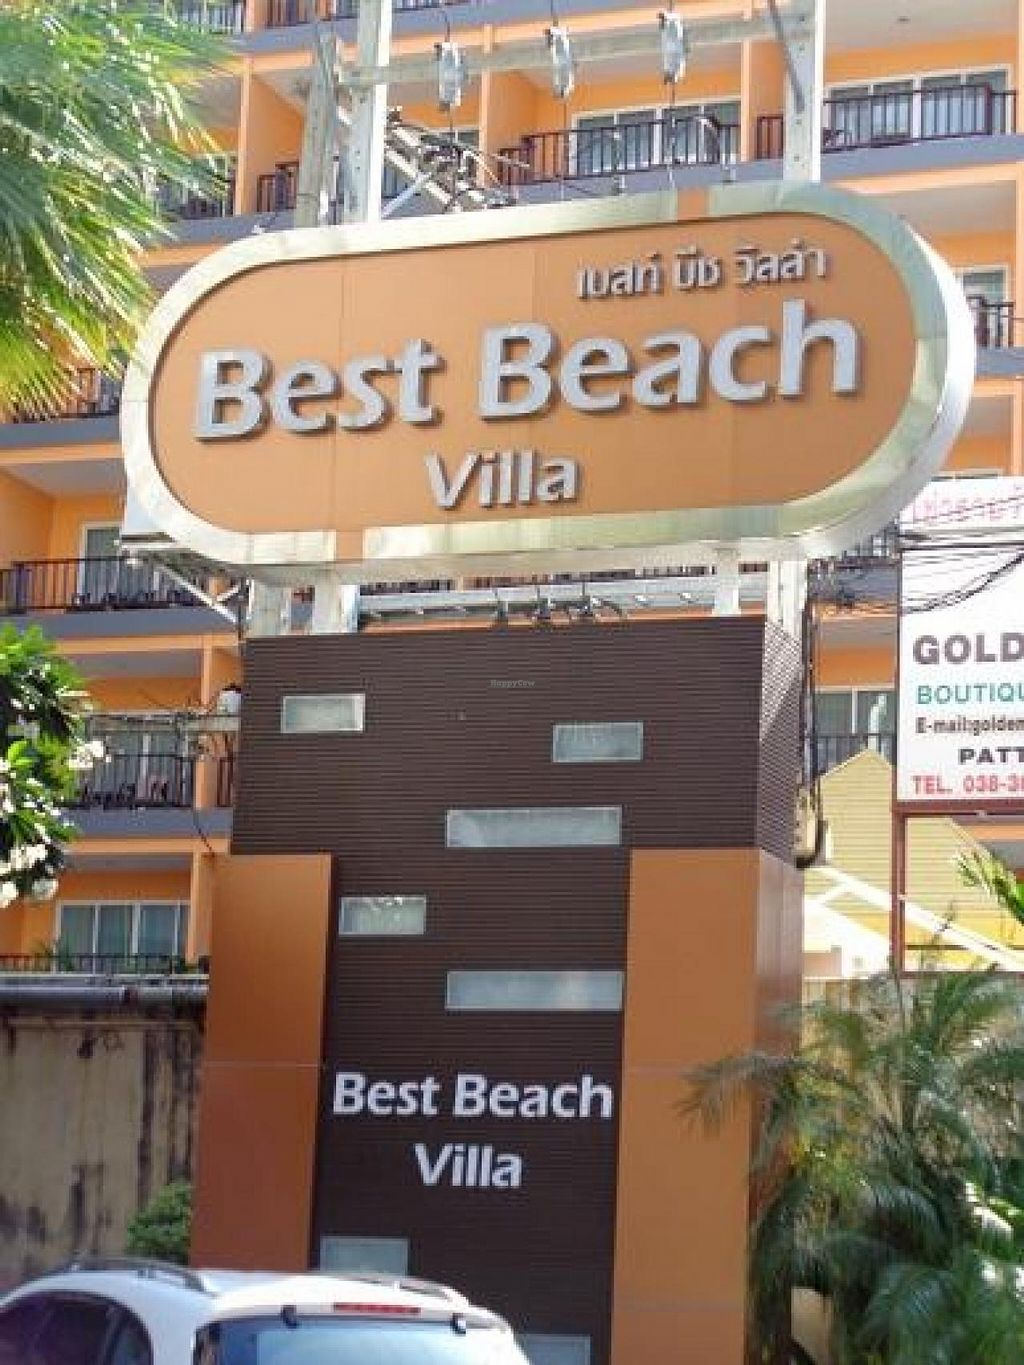 """Photo of Best Beach Villa  by <a href=""""/members/profile/Kelly%20Kelly"""">Kelly Kelly</a> <br/>Best Beach Villa sign <br/> September 30, 2014  - <a href='/contact/abuse/image/51828/81677'>Report</a>"""